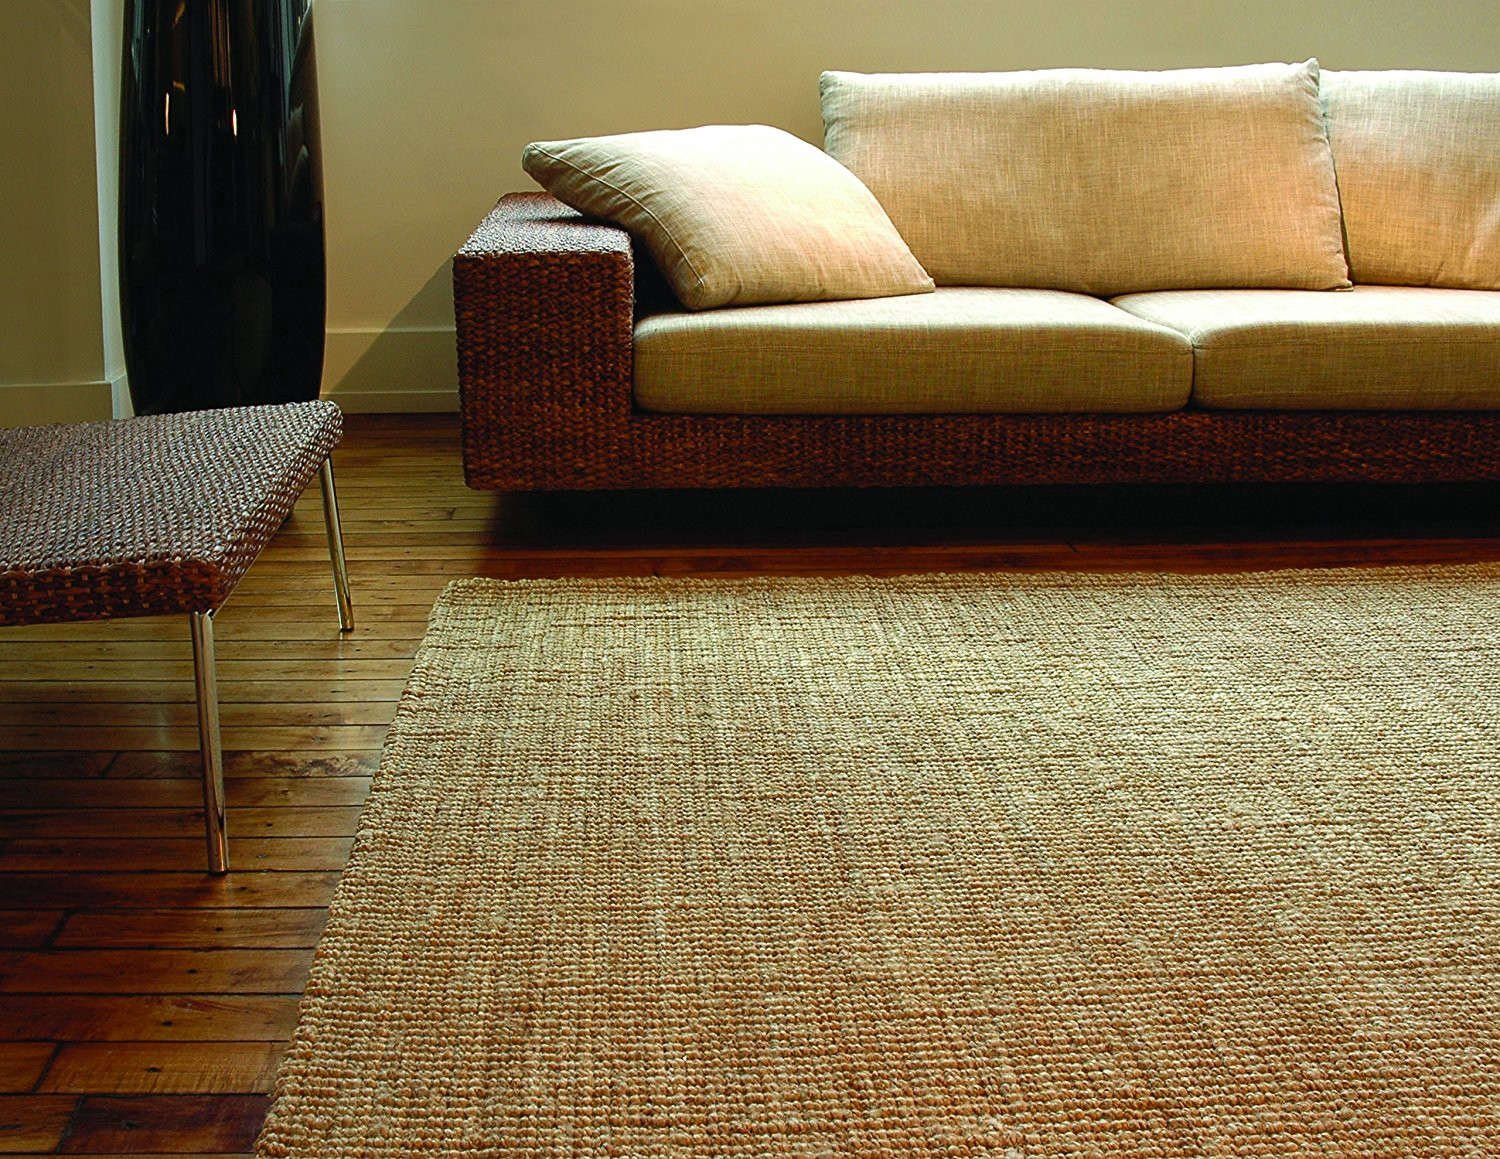 Jute Rugs Online Diffe Top Quality Rug Option Fab Habitat Fabhabitat Co Nz Medium